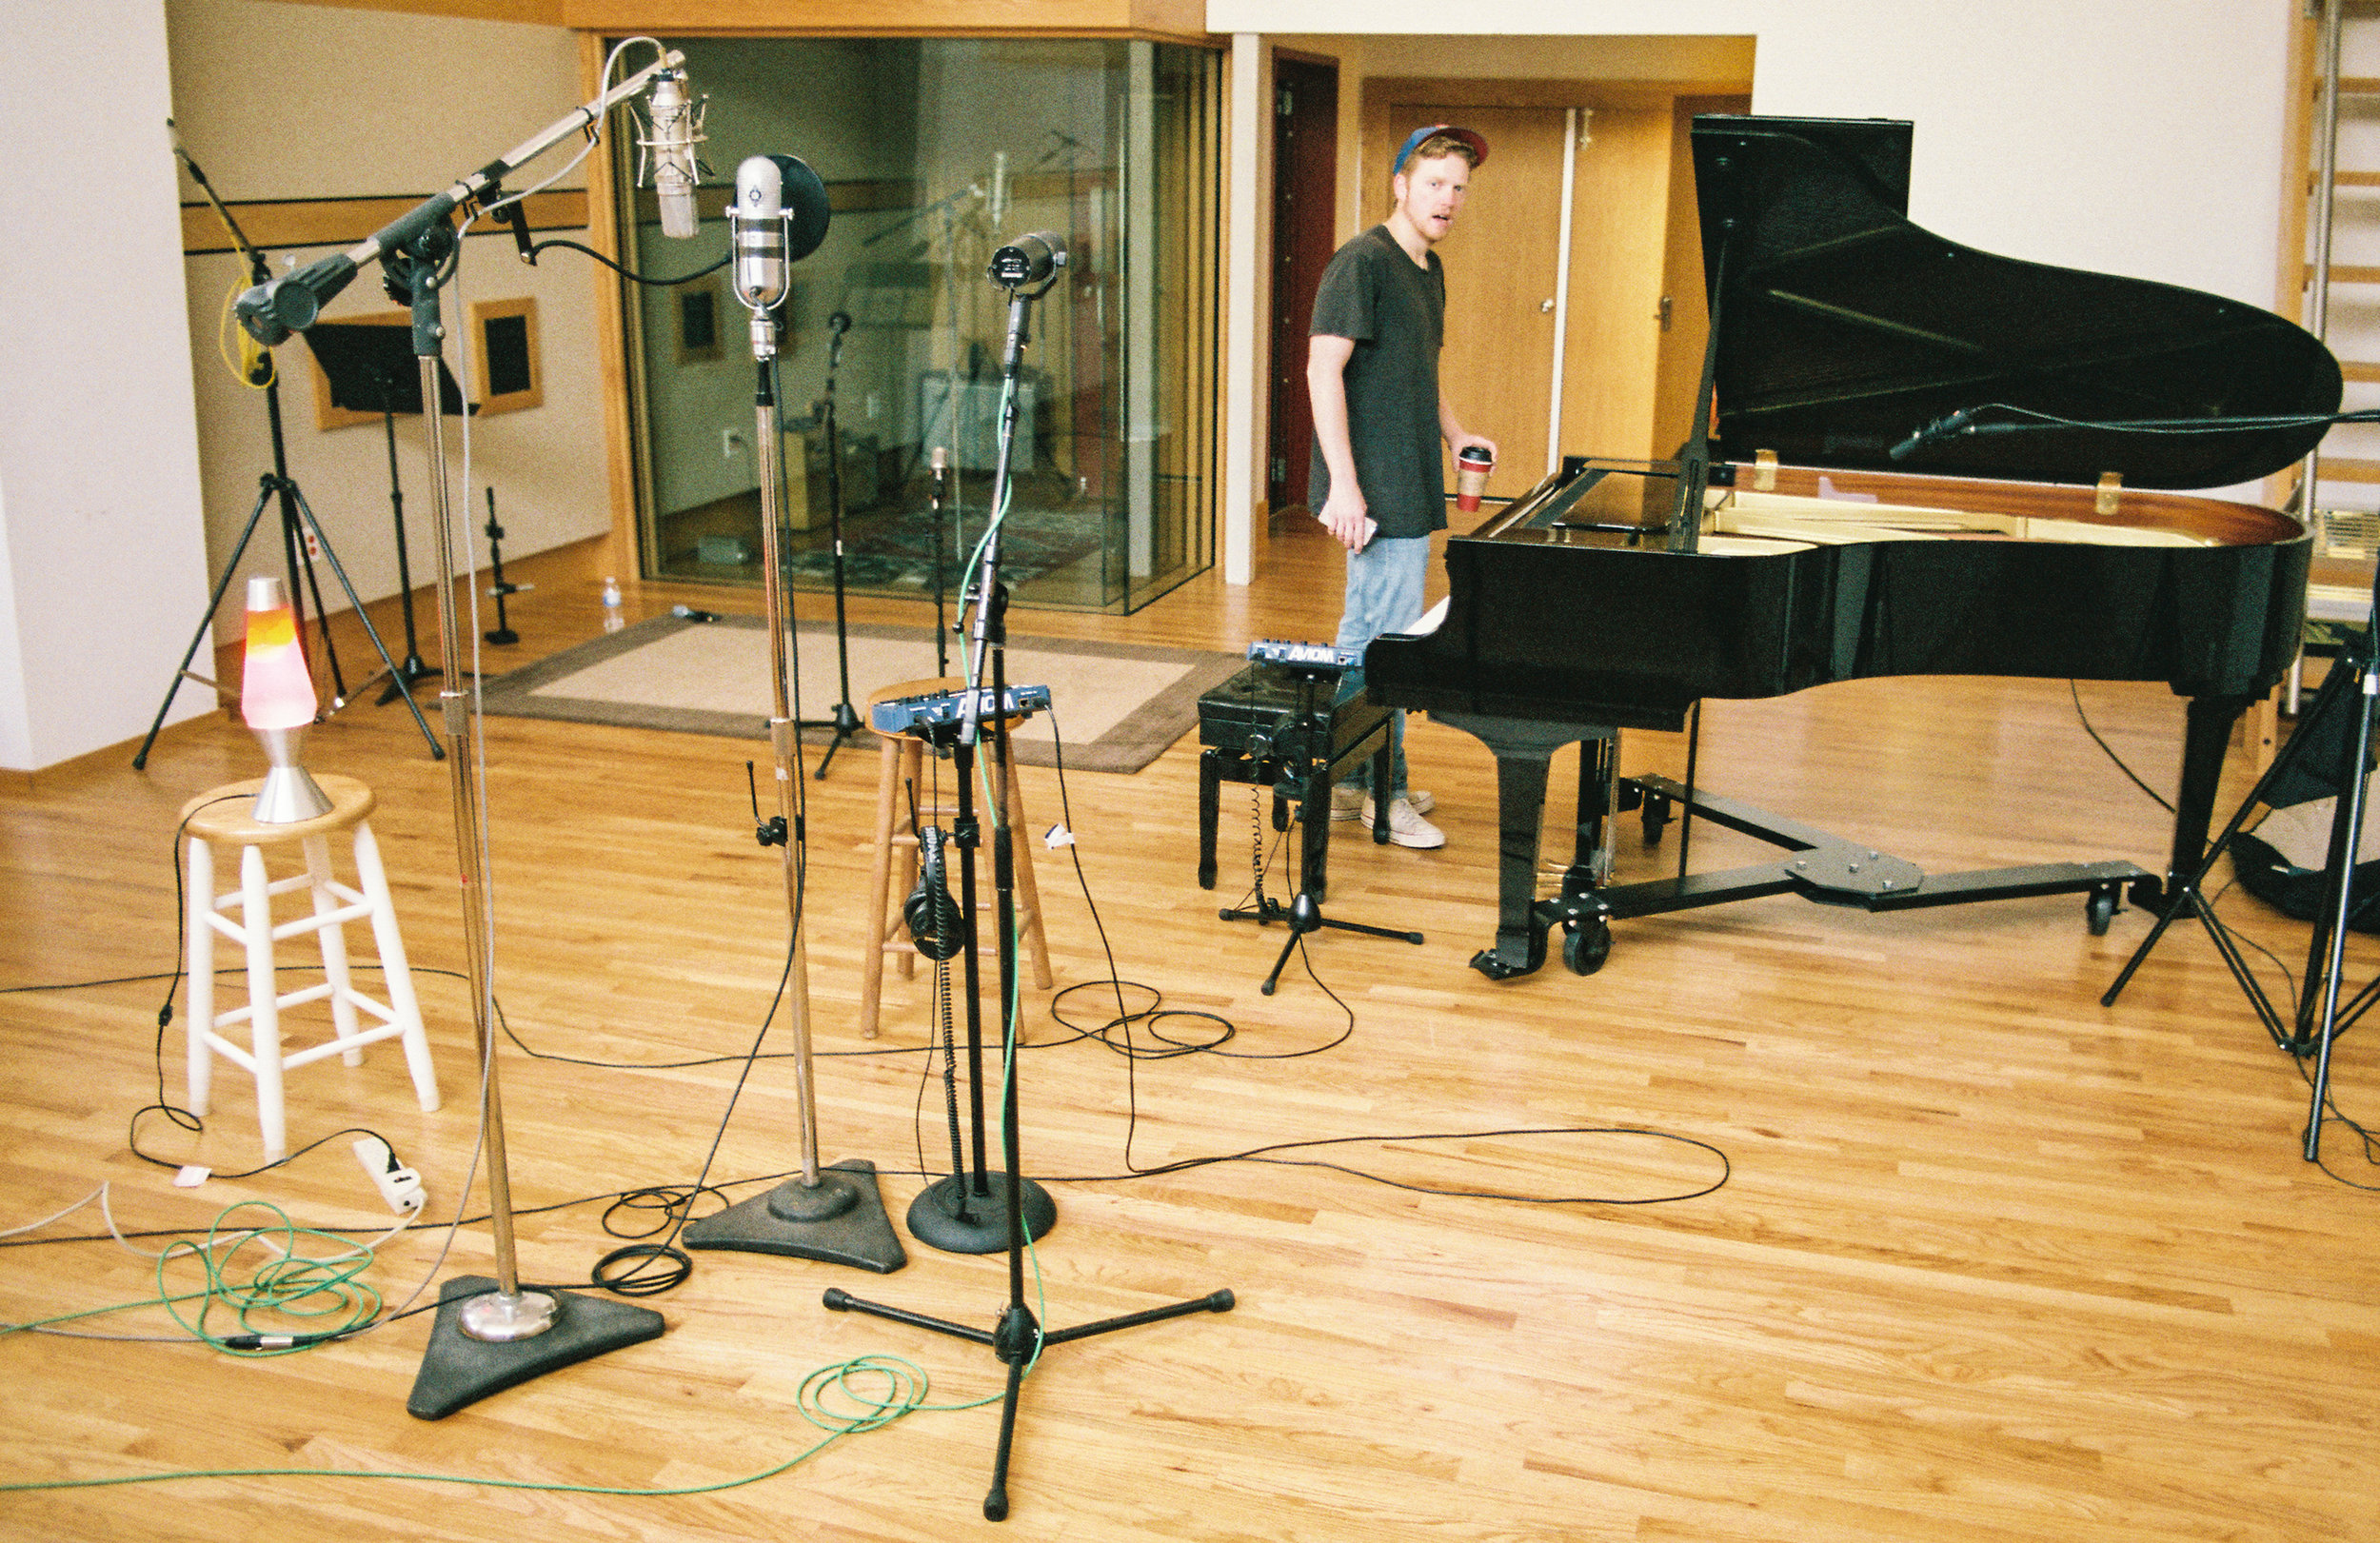 - Here was our setup at 1093 in late October for vocals and piano. Here we were recording vocals with an original Neumann U67, RCA 77DX ribbon, and a Shure SM7B. One of my favorite mics to use on the piano is the Neumann RSM 191. One of my favorite sounds on the record is Bobby's voice on a song called